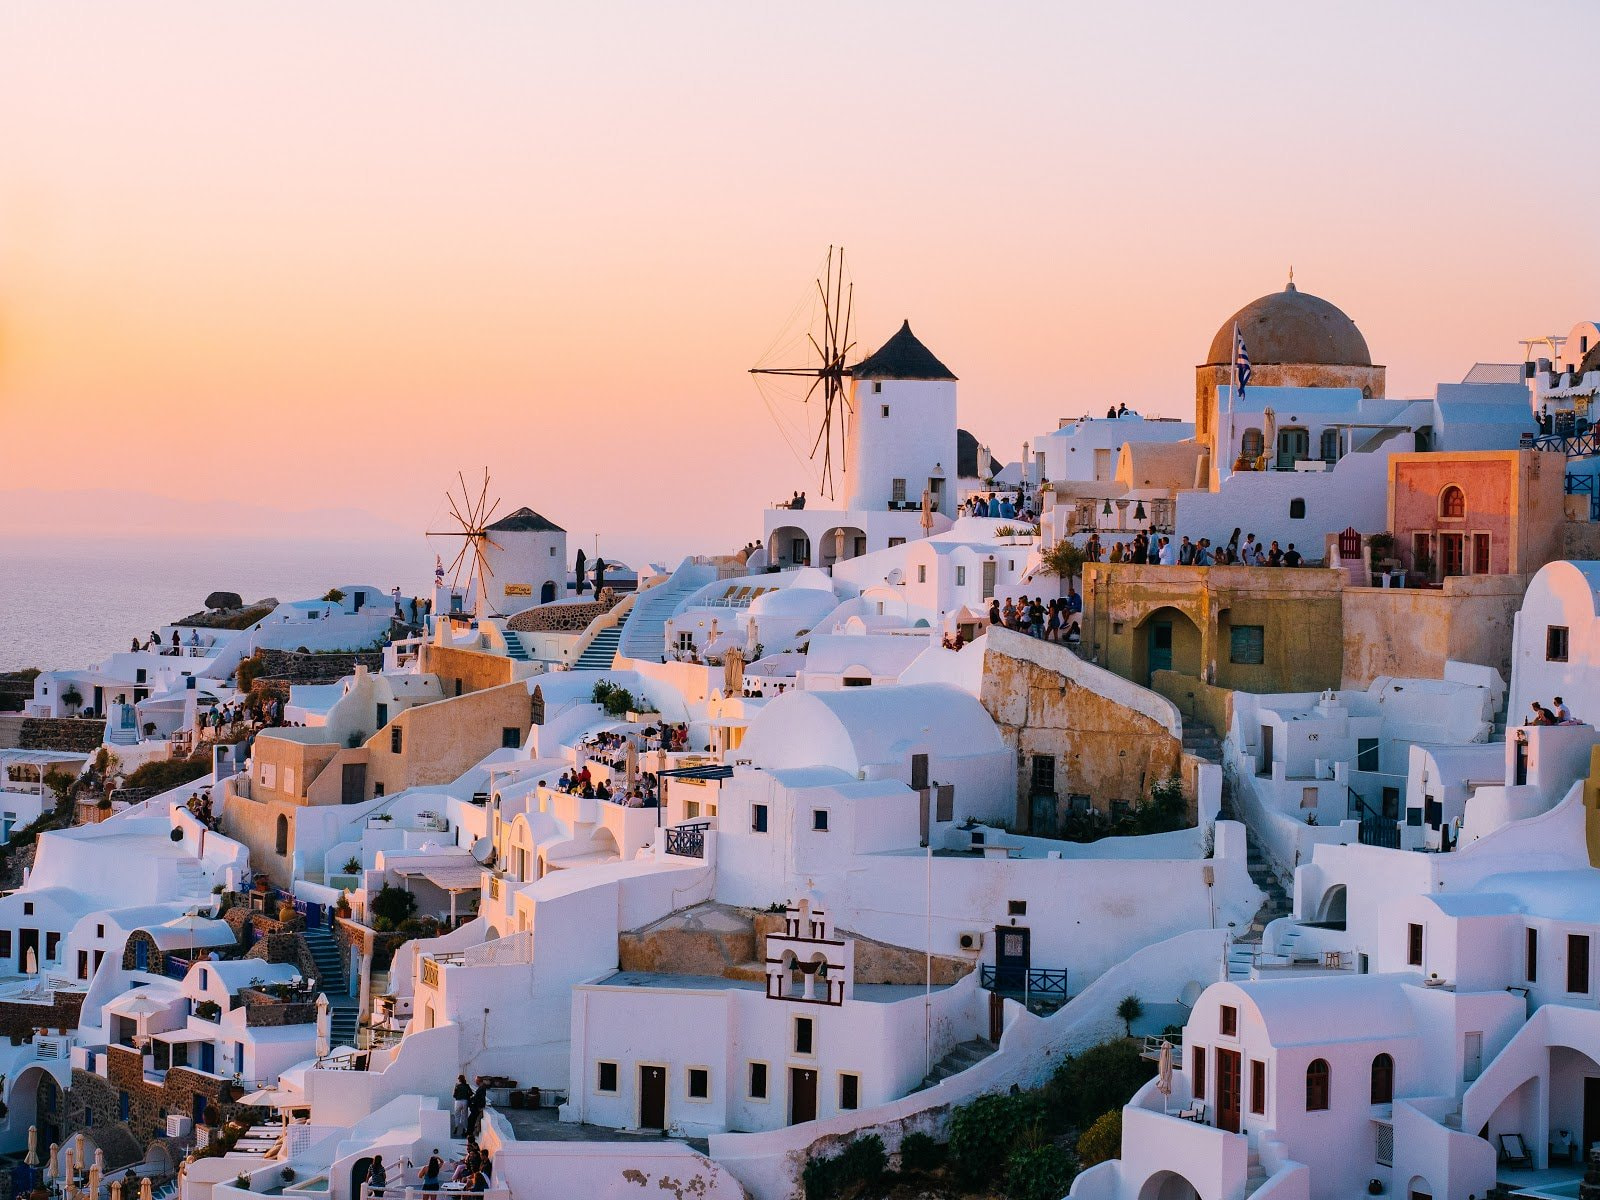 Golden hour photography over Santorini by Tom Grimbert